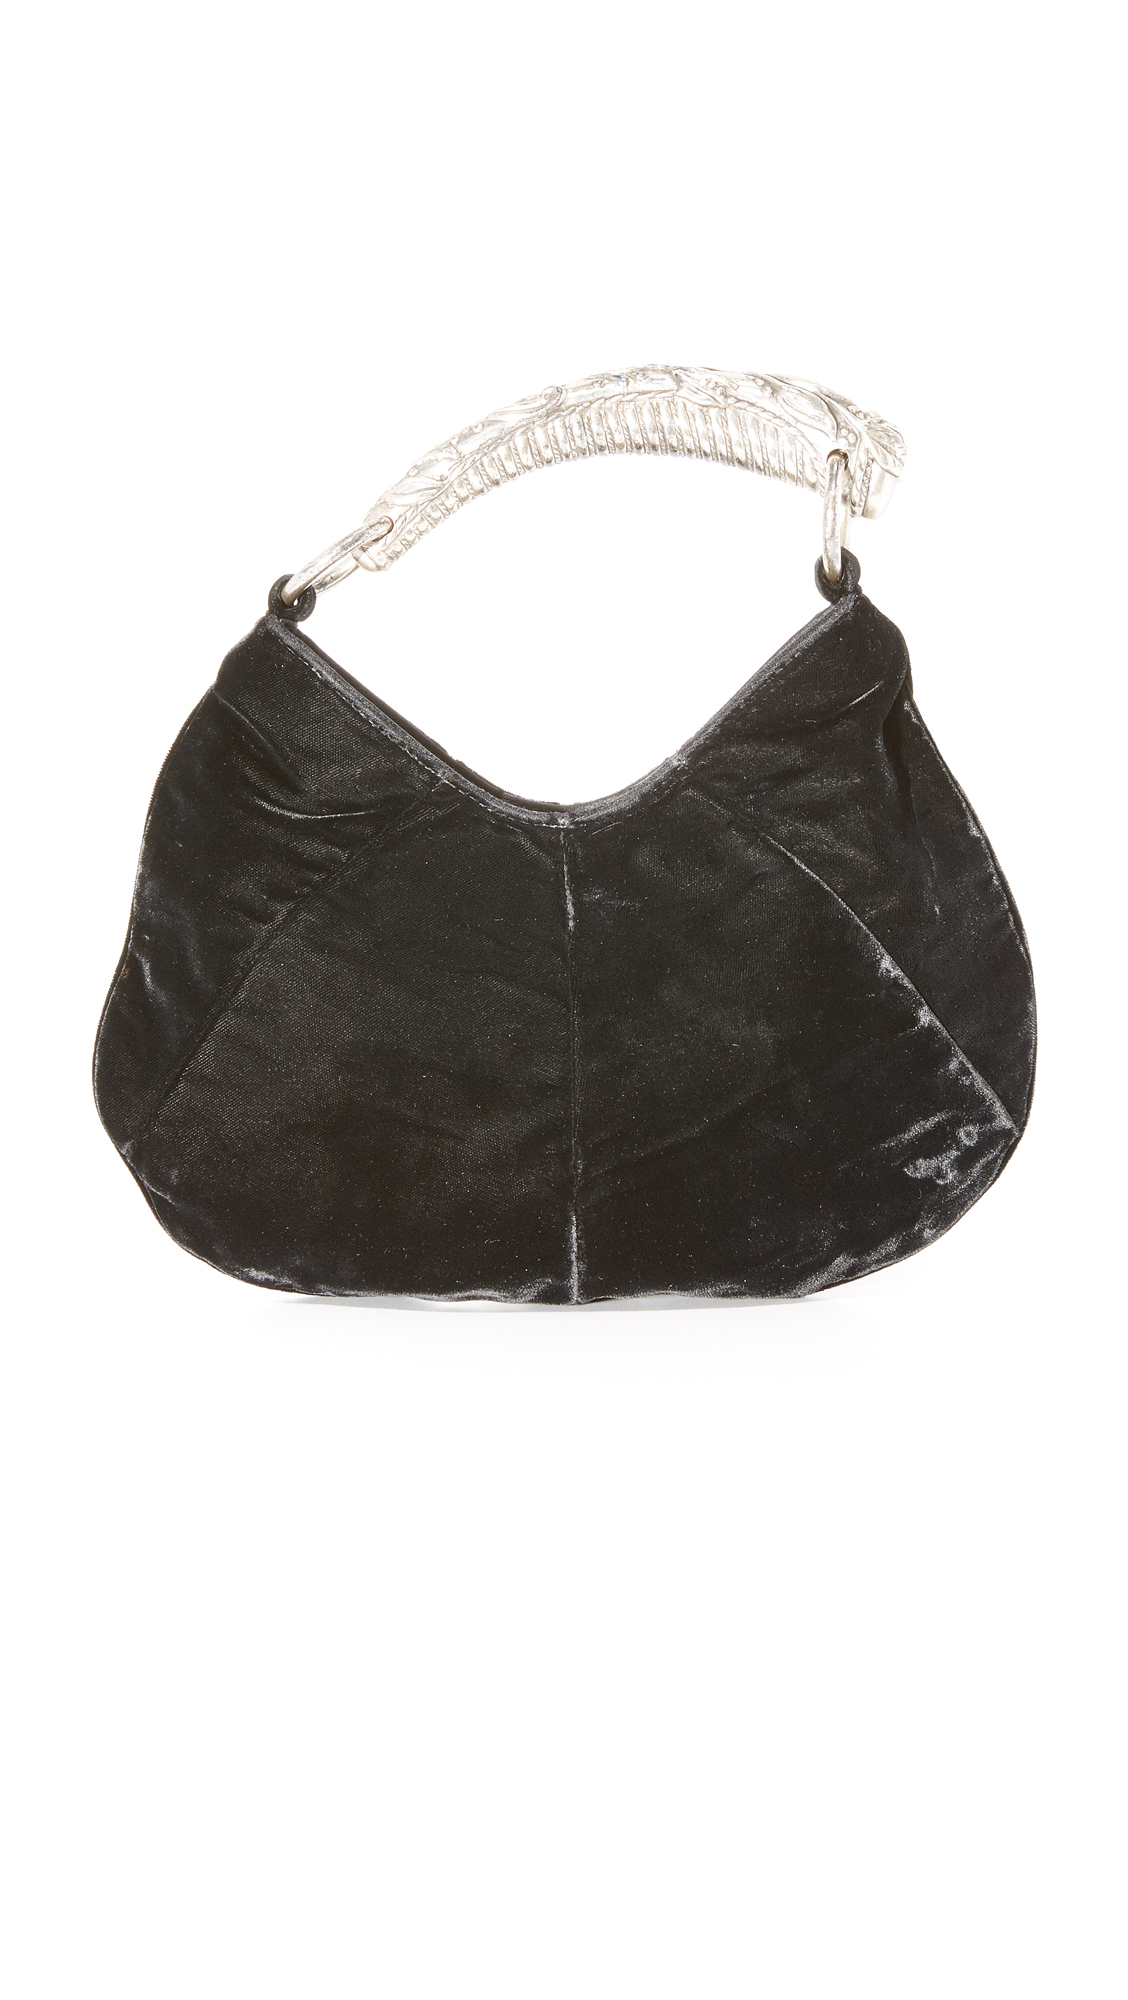 An tusk shaped, oxidized metal handle details this previously owned YSL handbag, crafted in soft velvet. Snap closure and satin lining. Dust bag included. Fabric: Velvet. Weight: 8oz / 0.23kg. Made in Italy. NOTE: Gentle wear should